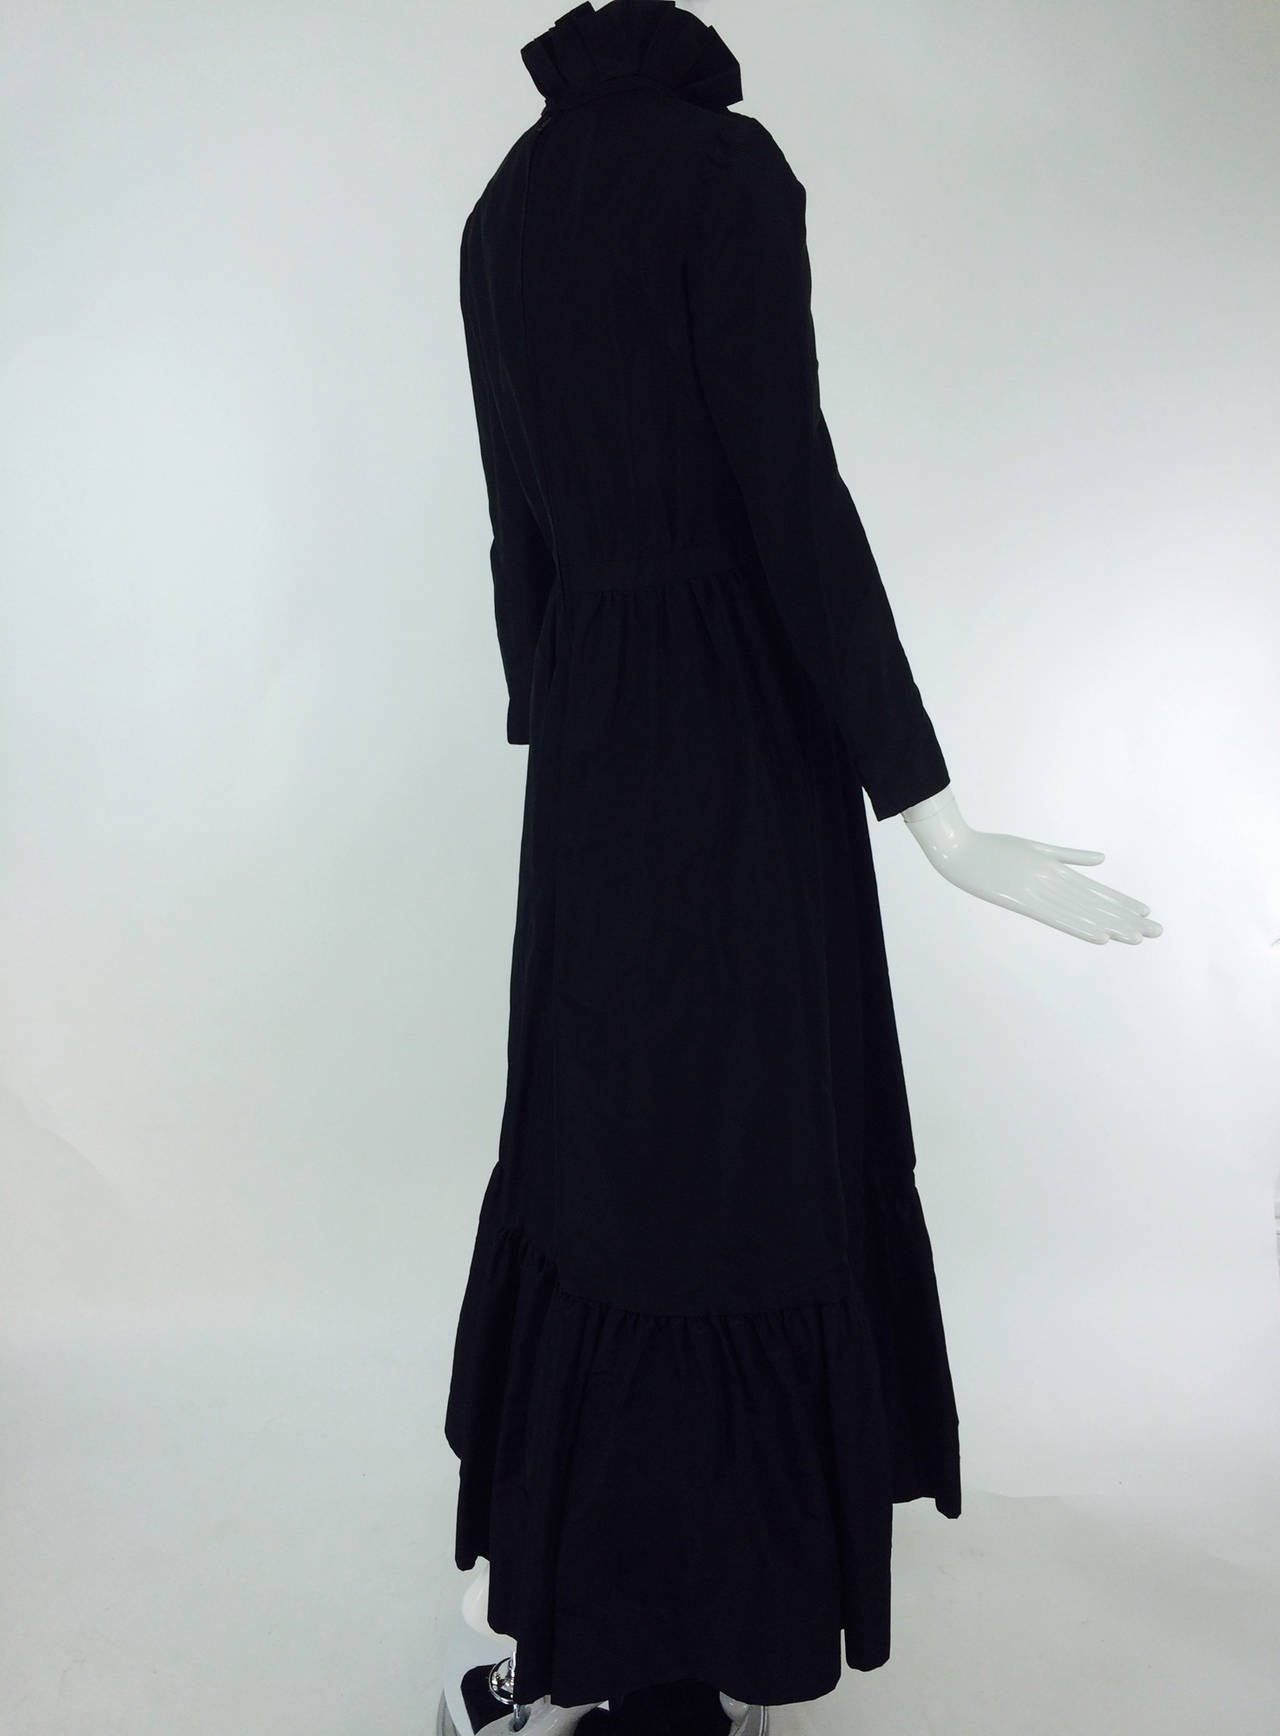 Shannon Rodgers for Jerry Silverman black Victorian style gown 1960s For Sale 2